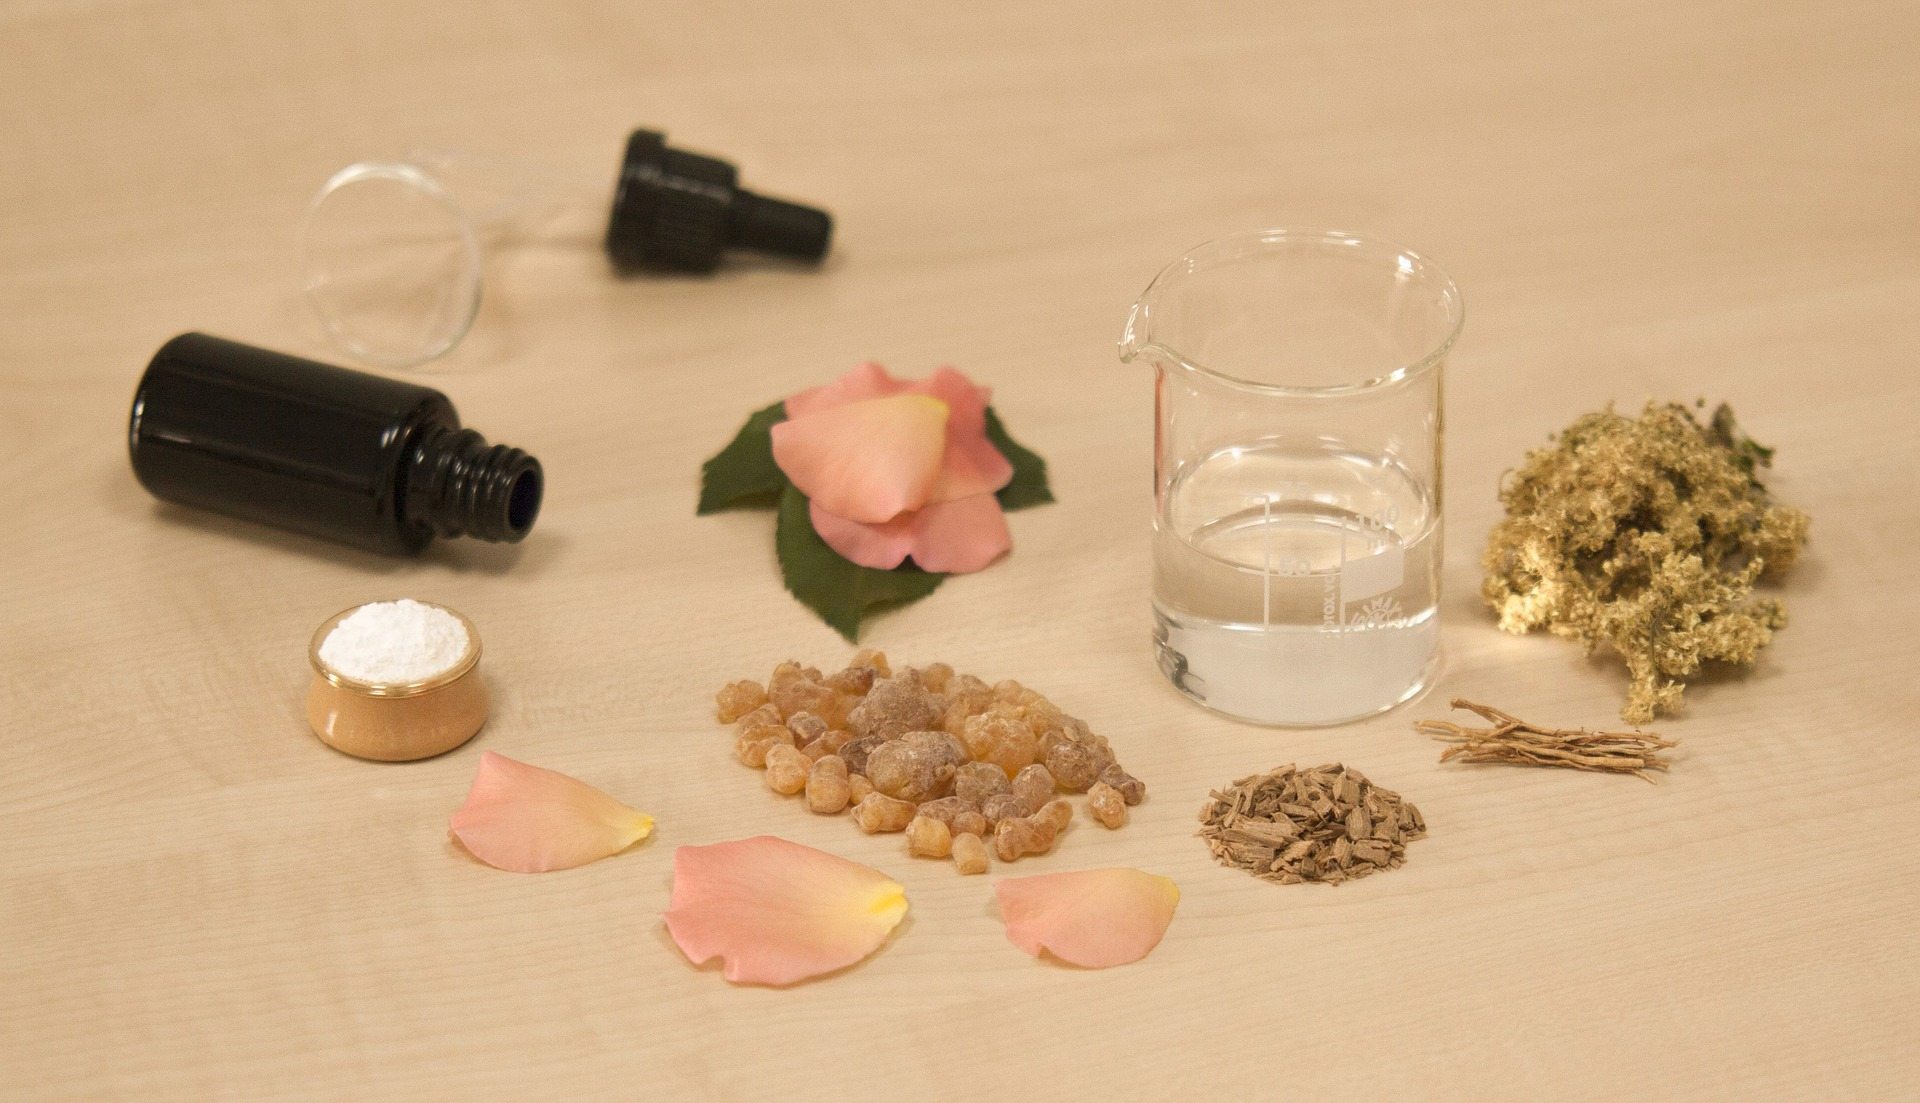 Sustainability of Frankincense – Using Frankincense to clean is simply as a shocking waste of a finite resource